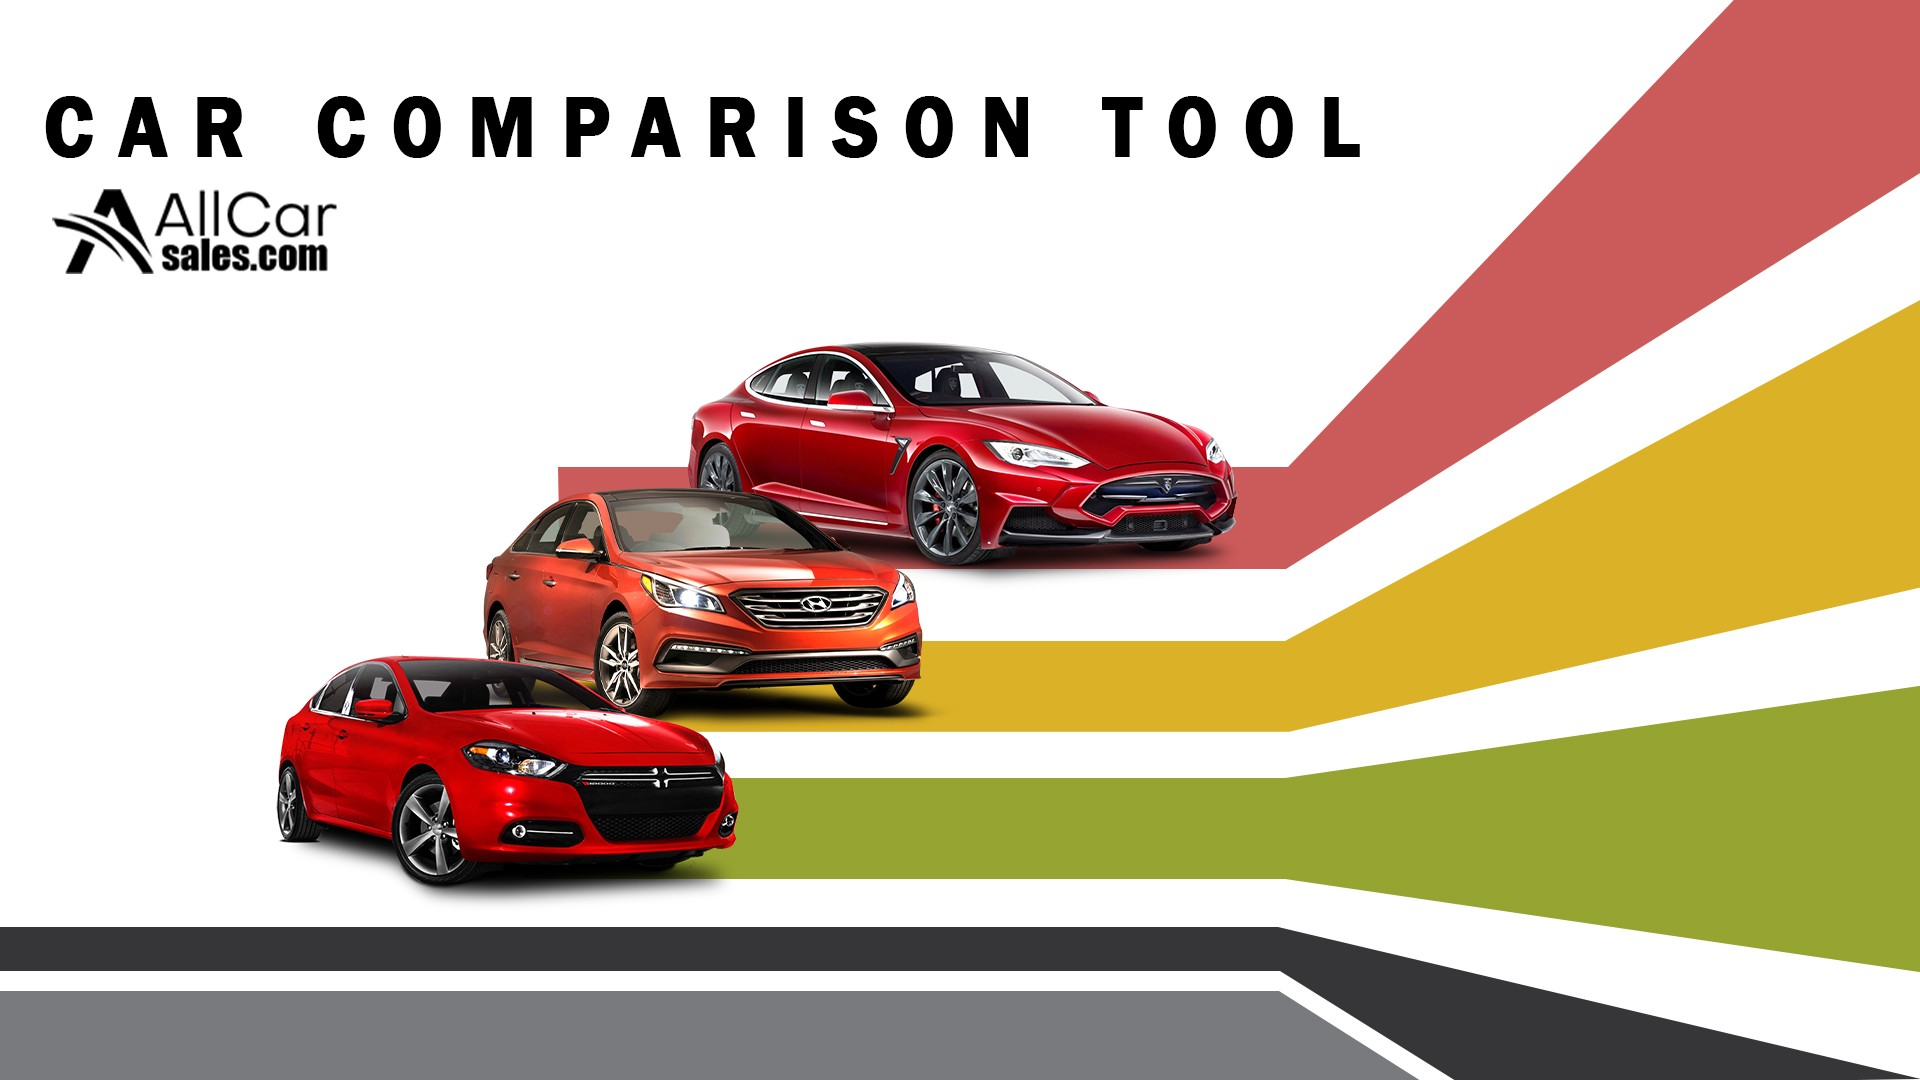 Compare Cars By Using Our Car Comparison Tool All Car Sales By All Car Sales Medium